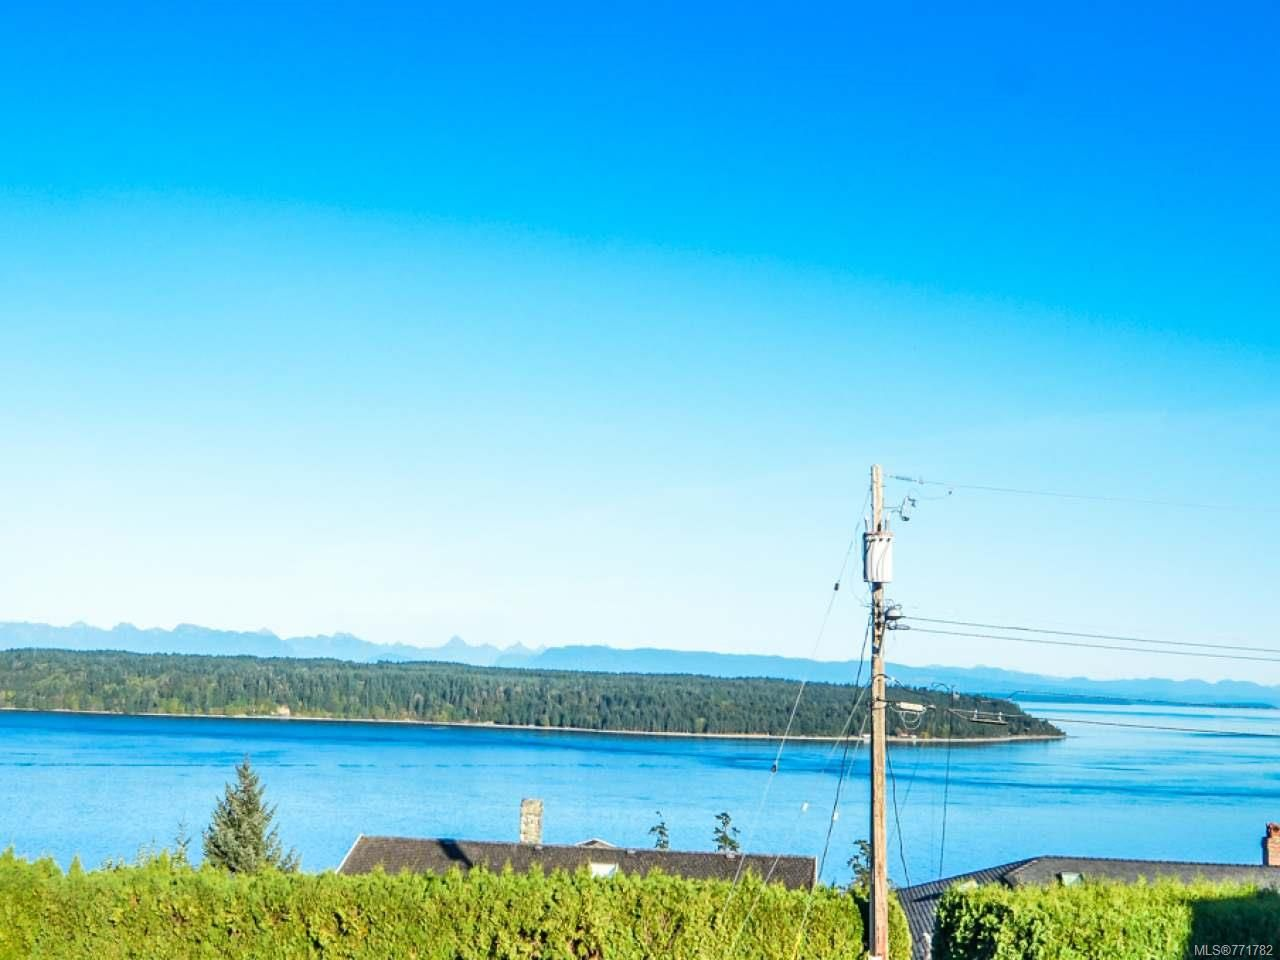 Photo 43: Photos: 451 S McLean St in CAMPBELL RIVER: CR Campbell River Central House for sale (Campbell River)  : MLS®# 771782